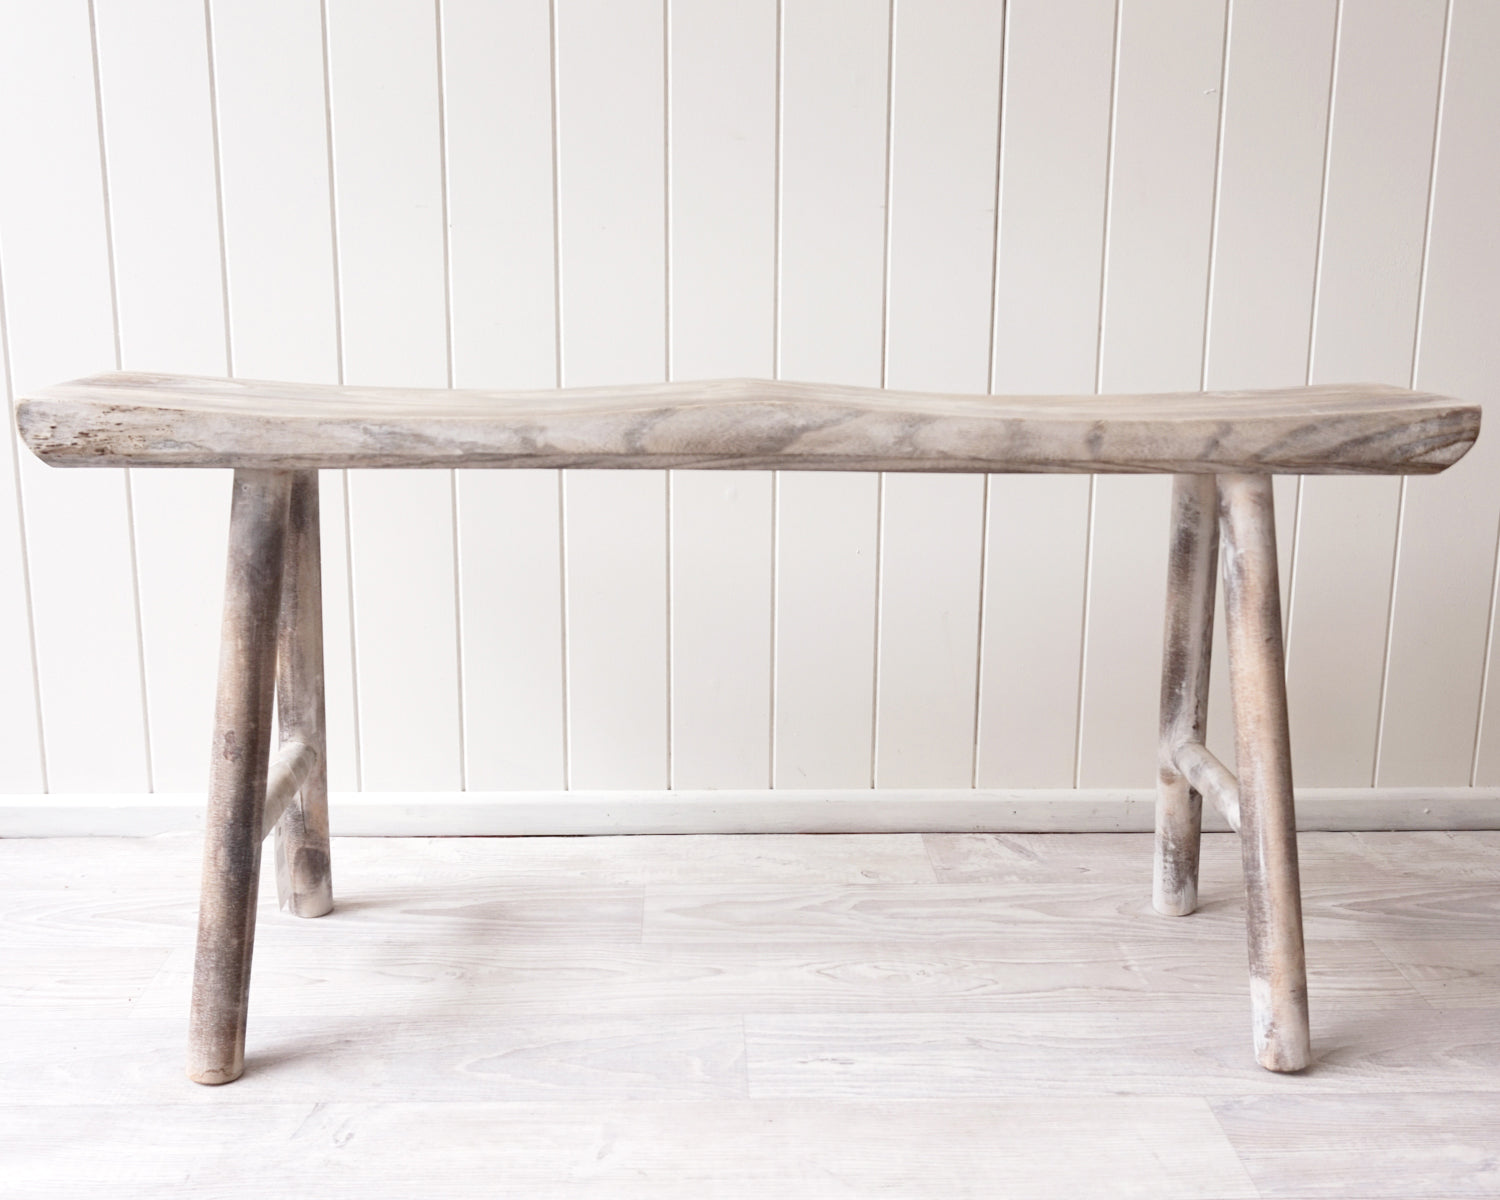 Bench/Stool - Honi - Timber - Whitewash - 99x19x47